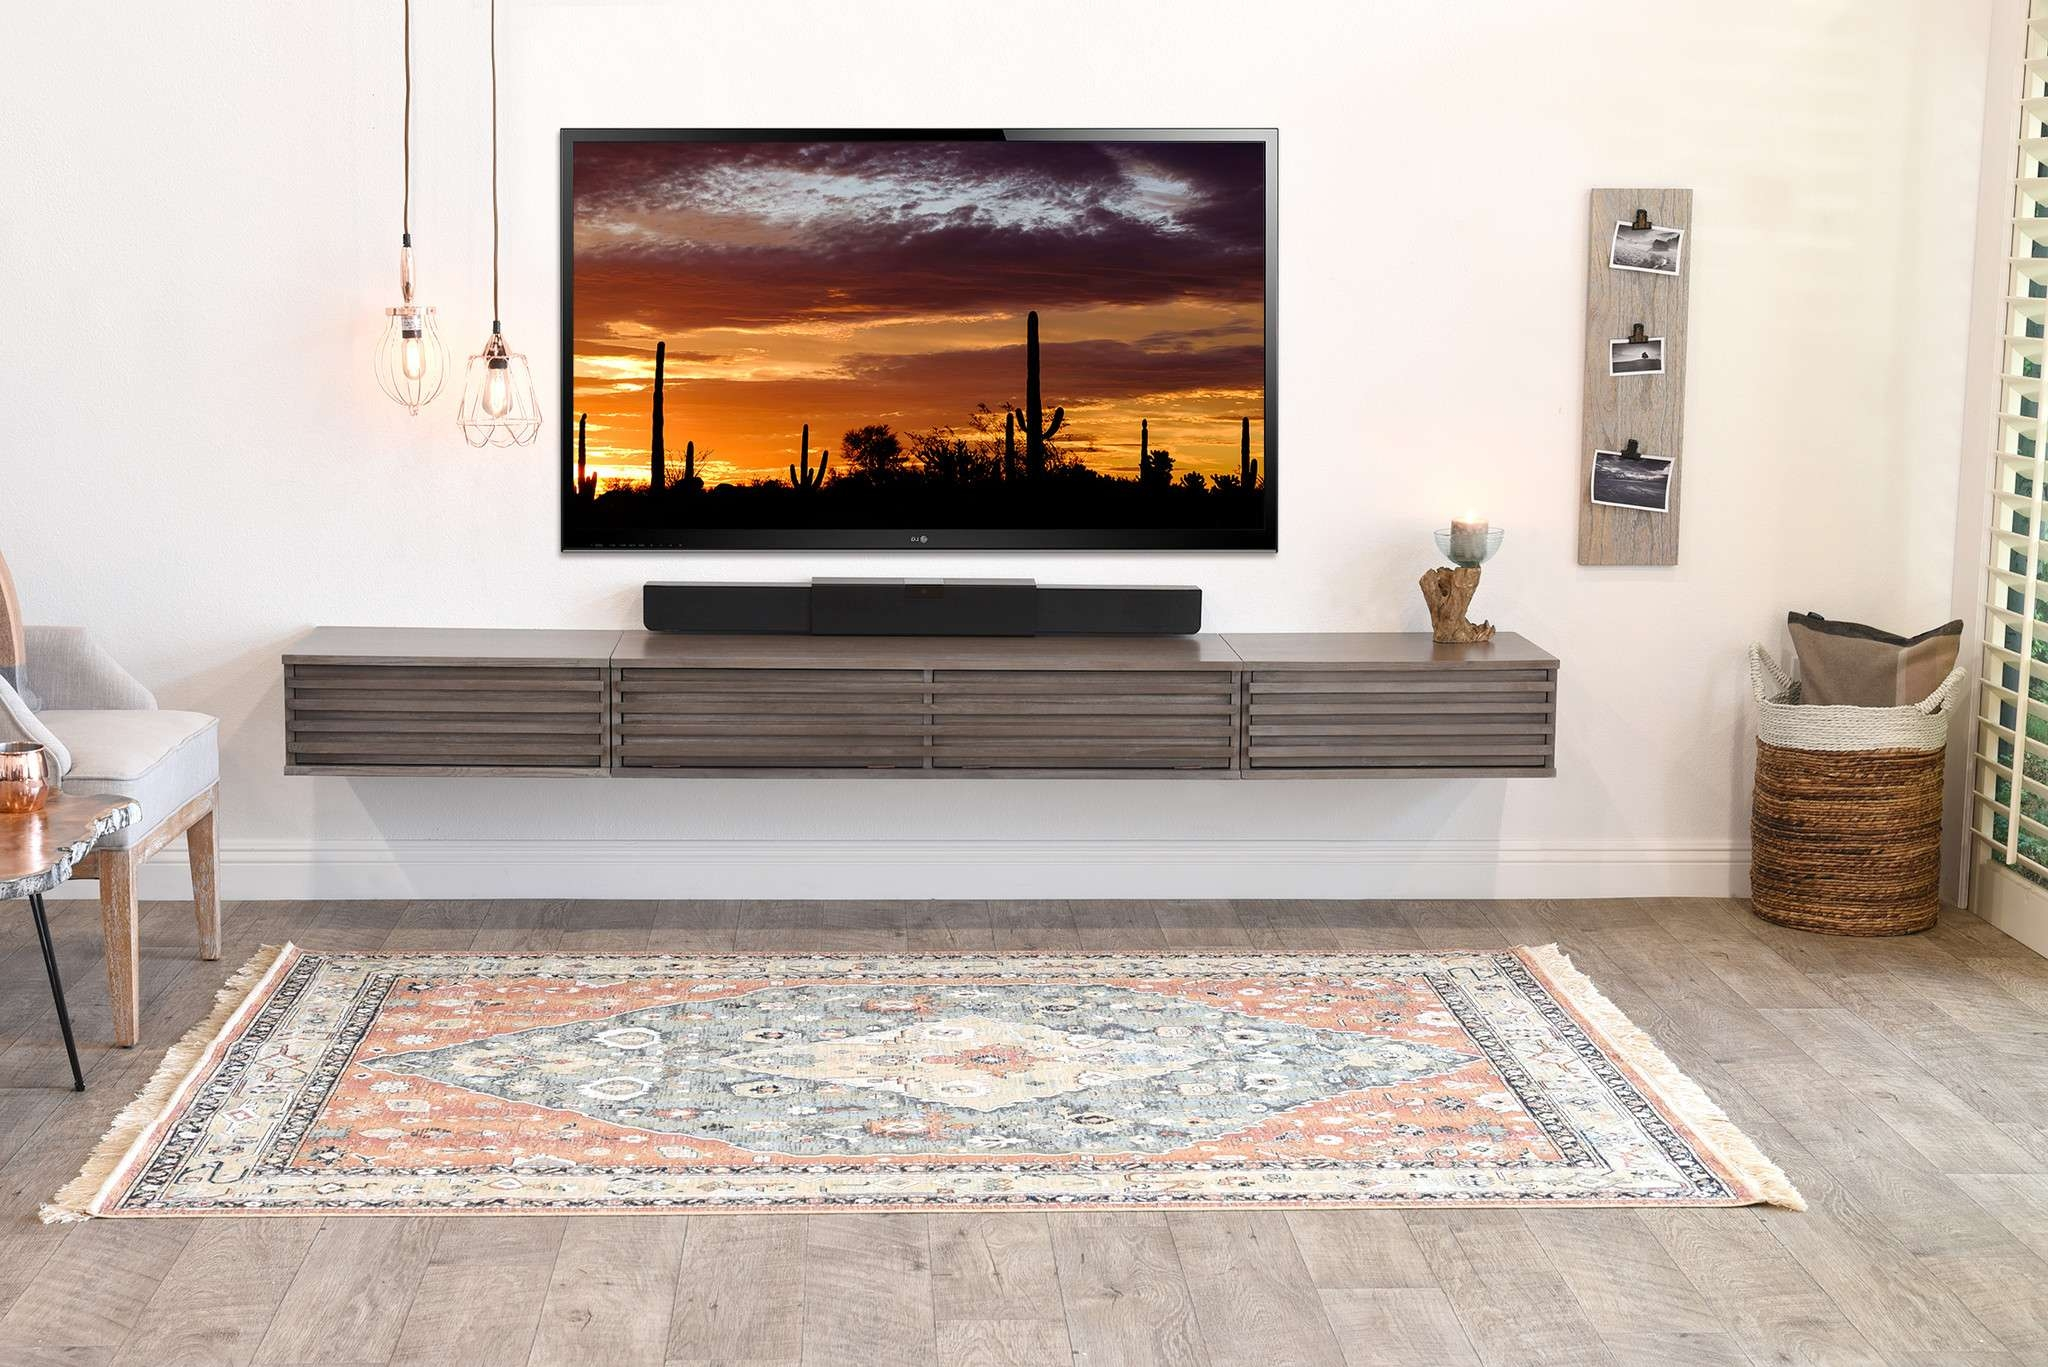 Shelves : Marvelous Ideas Floating Wall Mount Tv Stand Lotus And In Modern Wall Mount Tv Stands (View 6 of 20)